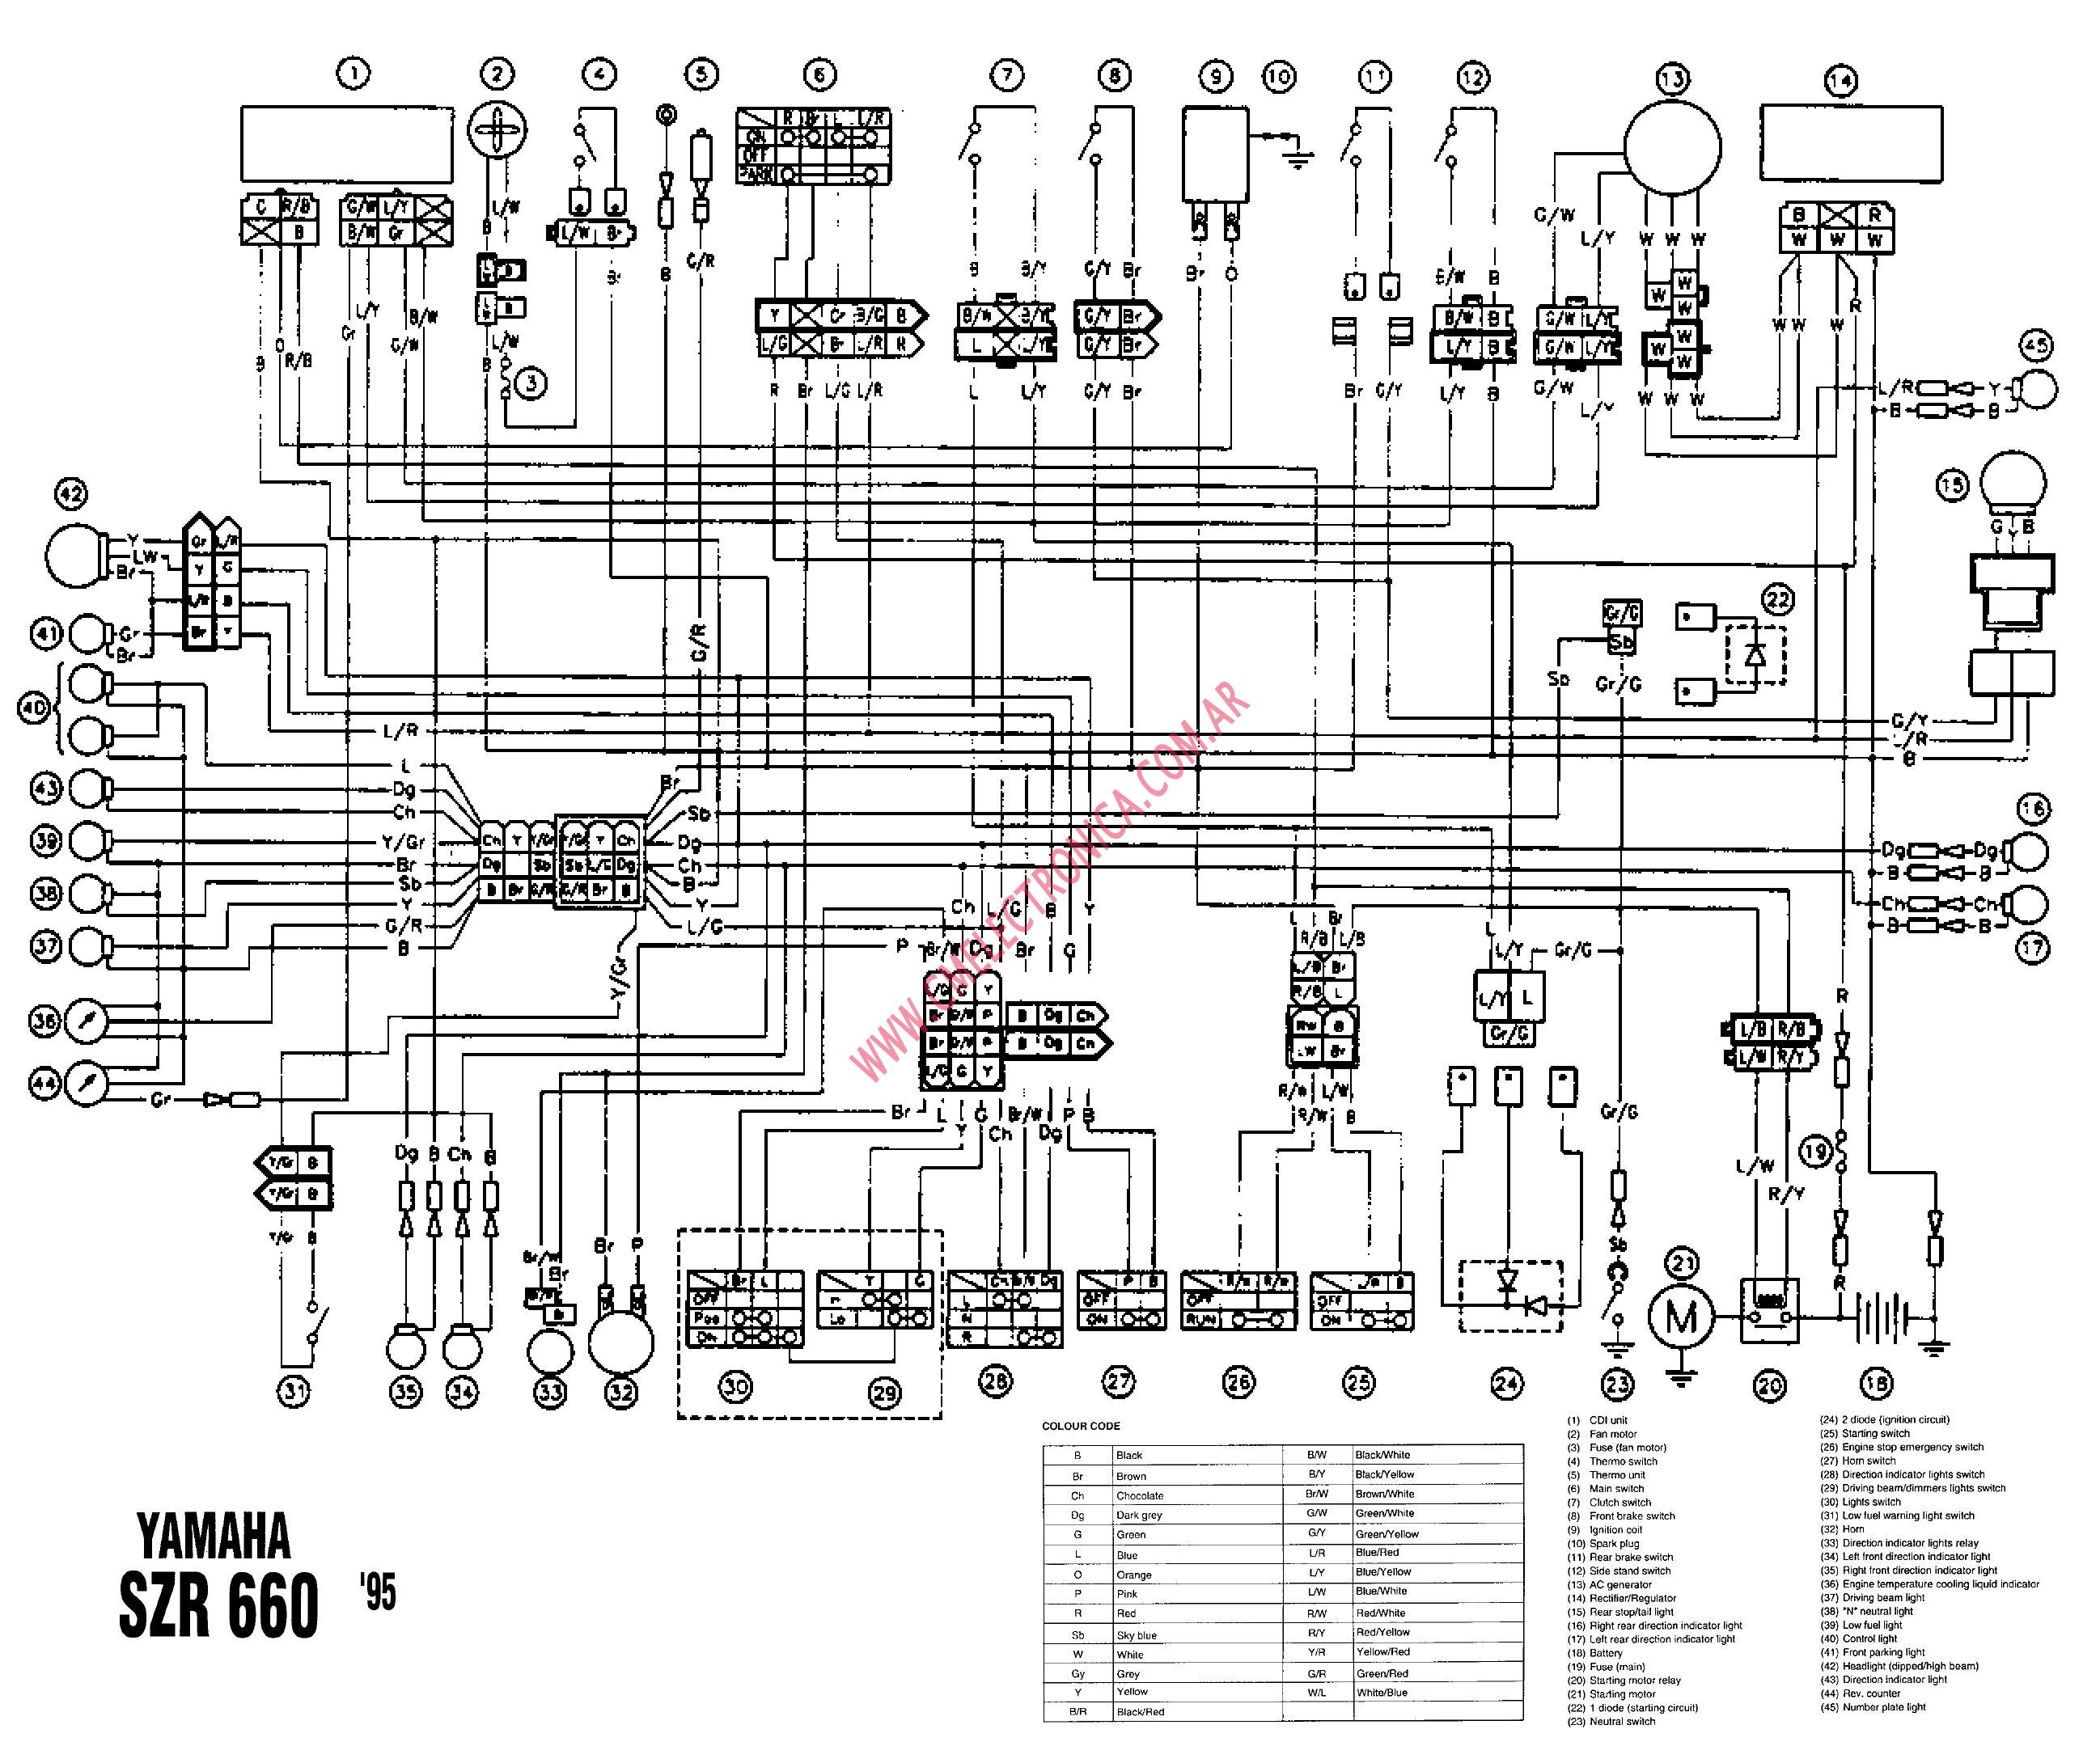 2008 Yamaha Rhino Wiring Diagram • Wiring Diagram For Free